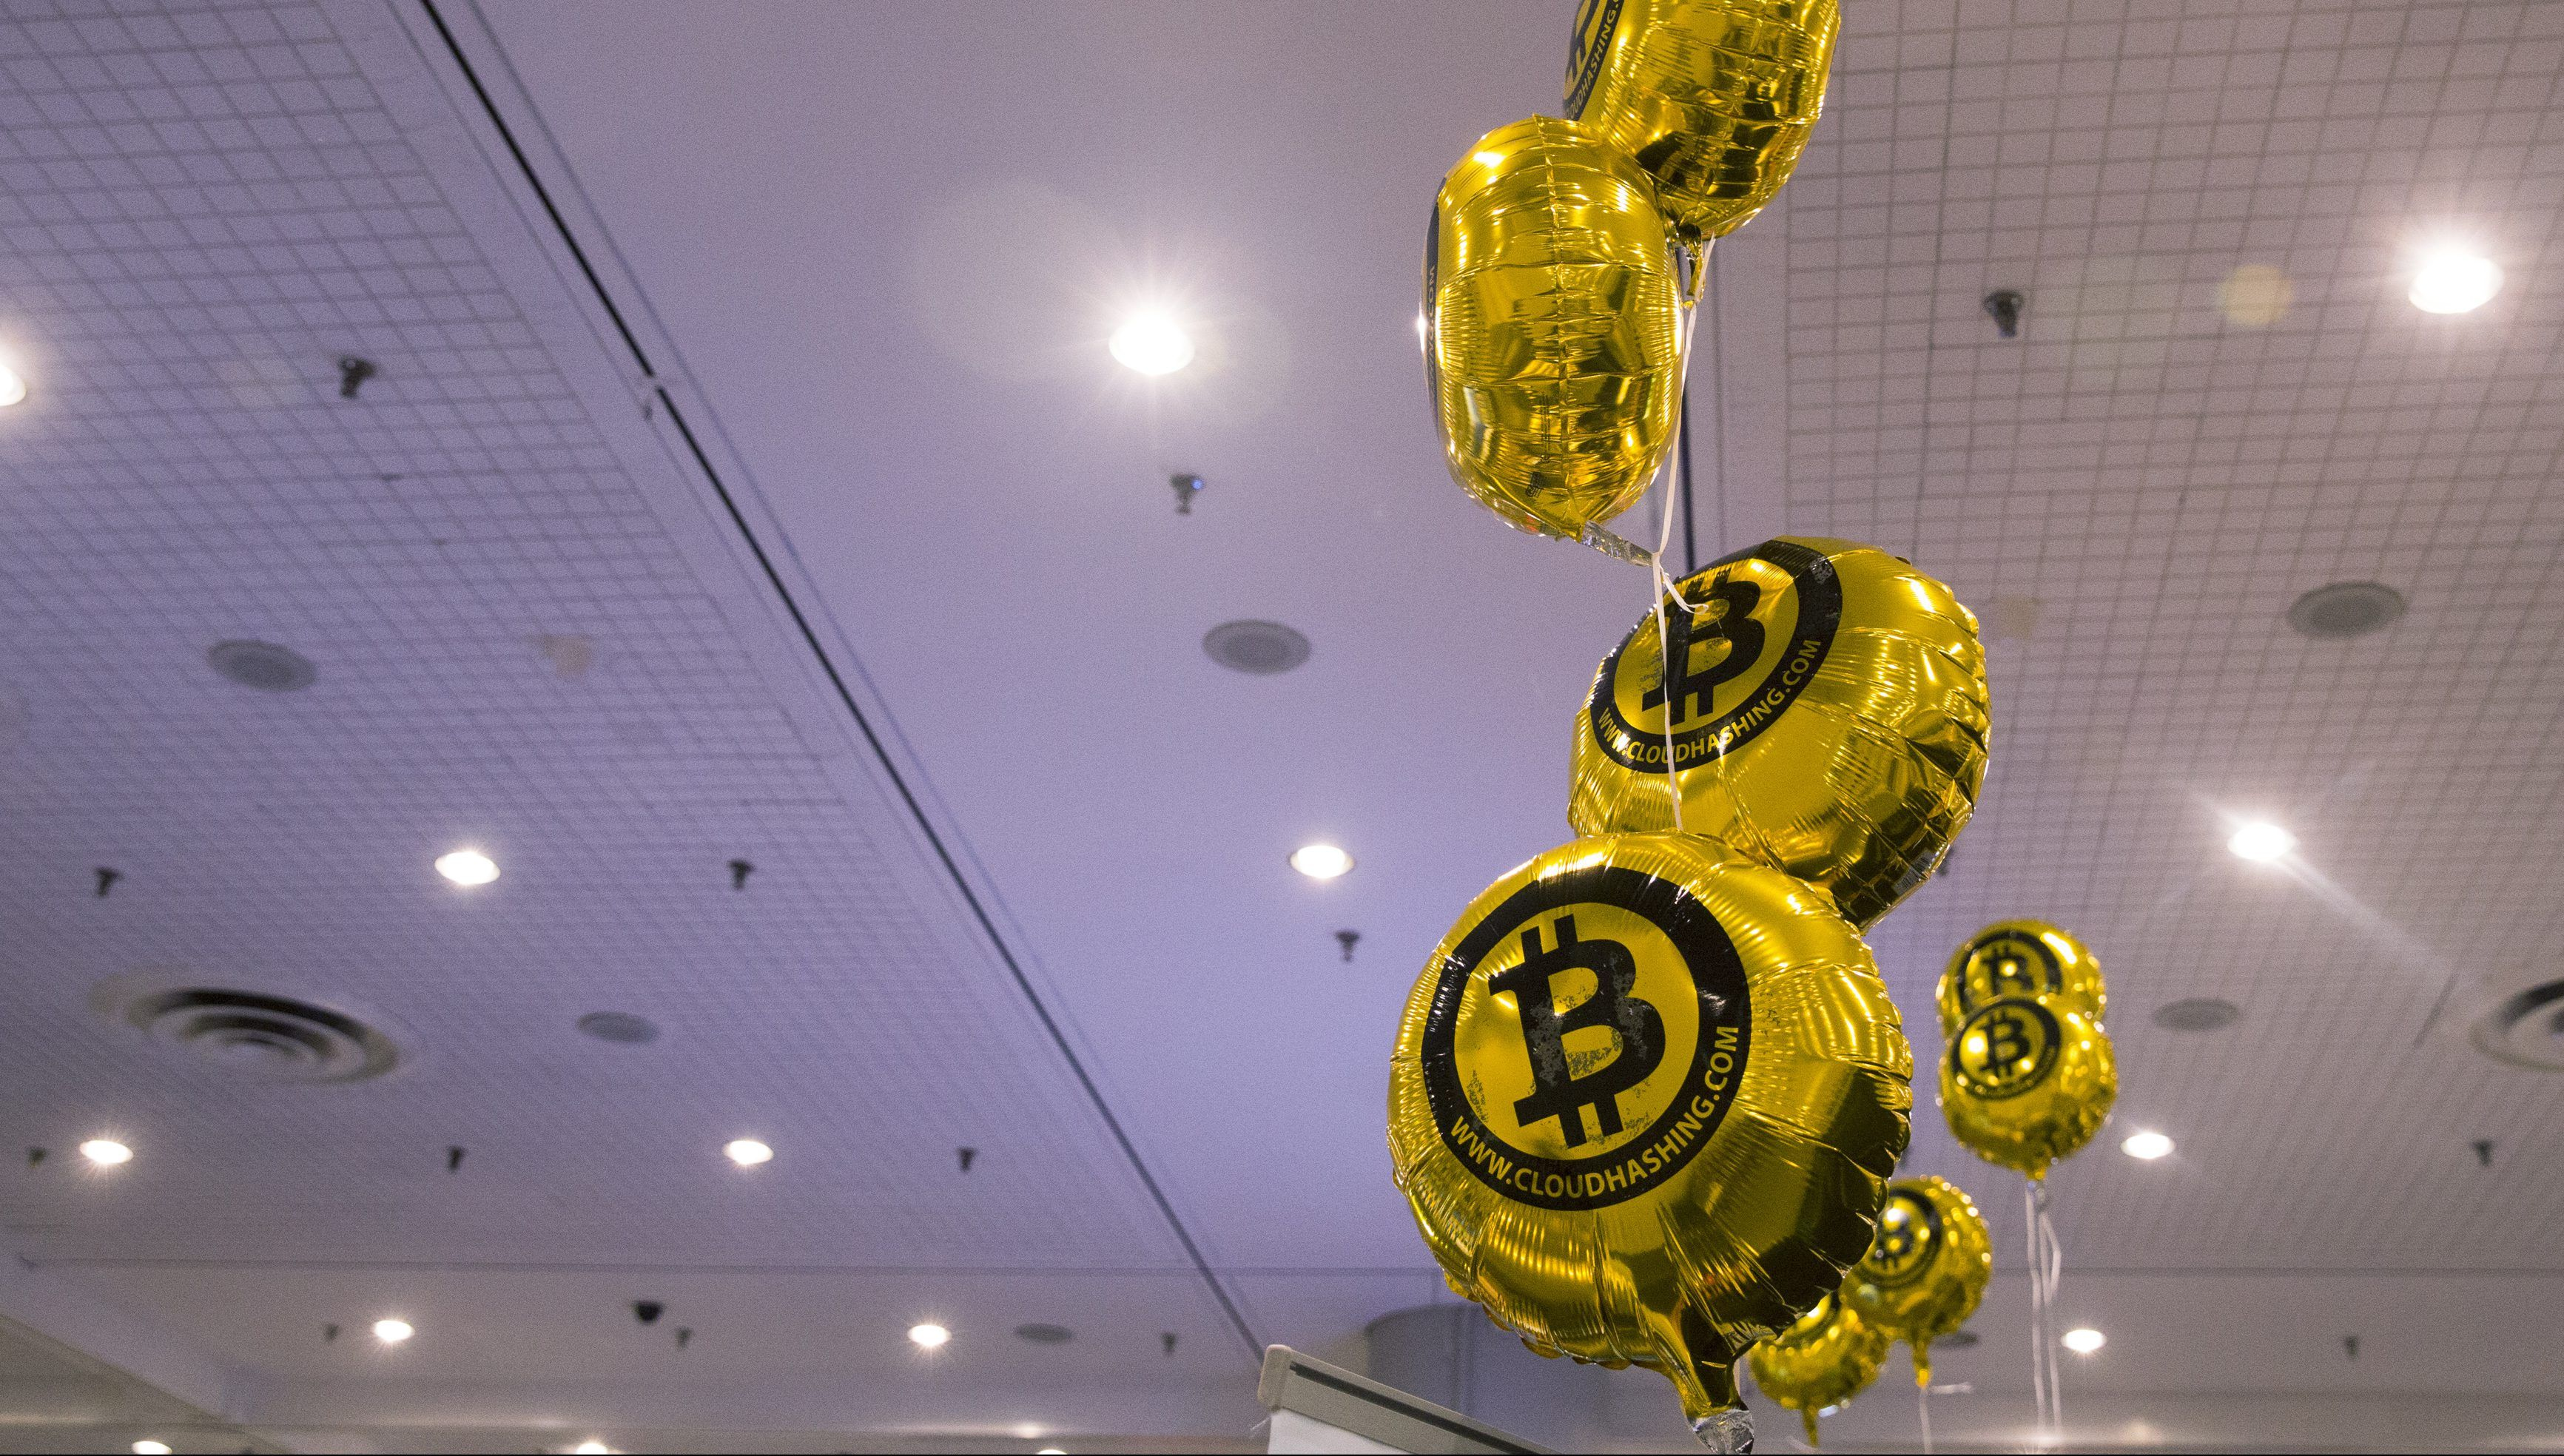 """Bitcoin themed balloons float in the air during the """"Inside Bitcoins: The Future of Virtual Currency Conference"""" in New York April 8, 2014."""